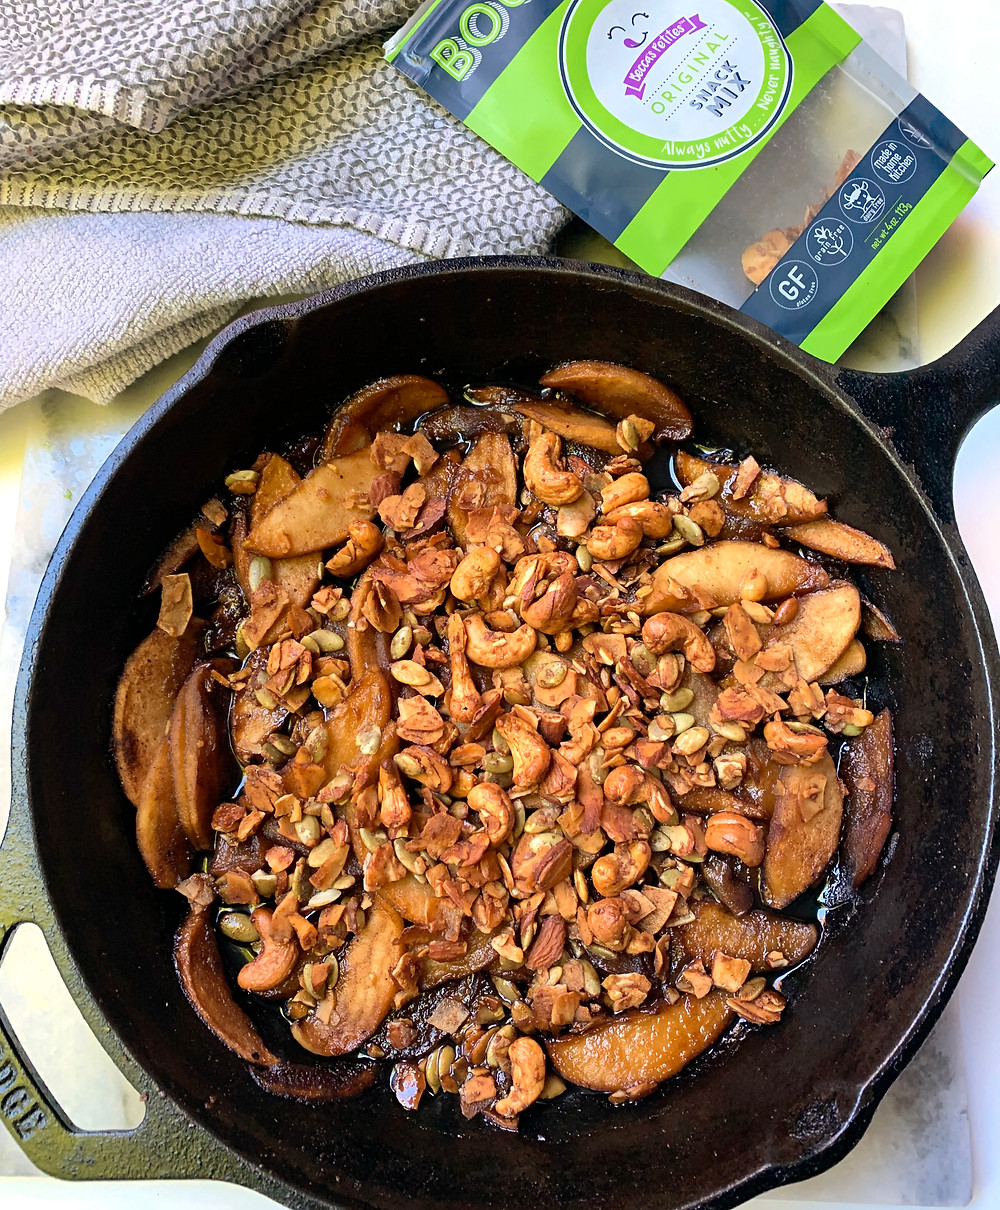 Grain Free Apple Crumble Recipe in a cast iron skillet made with our shops product Becca's Petites snack mix.